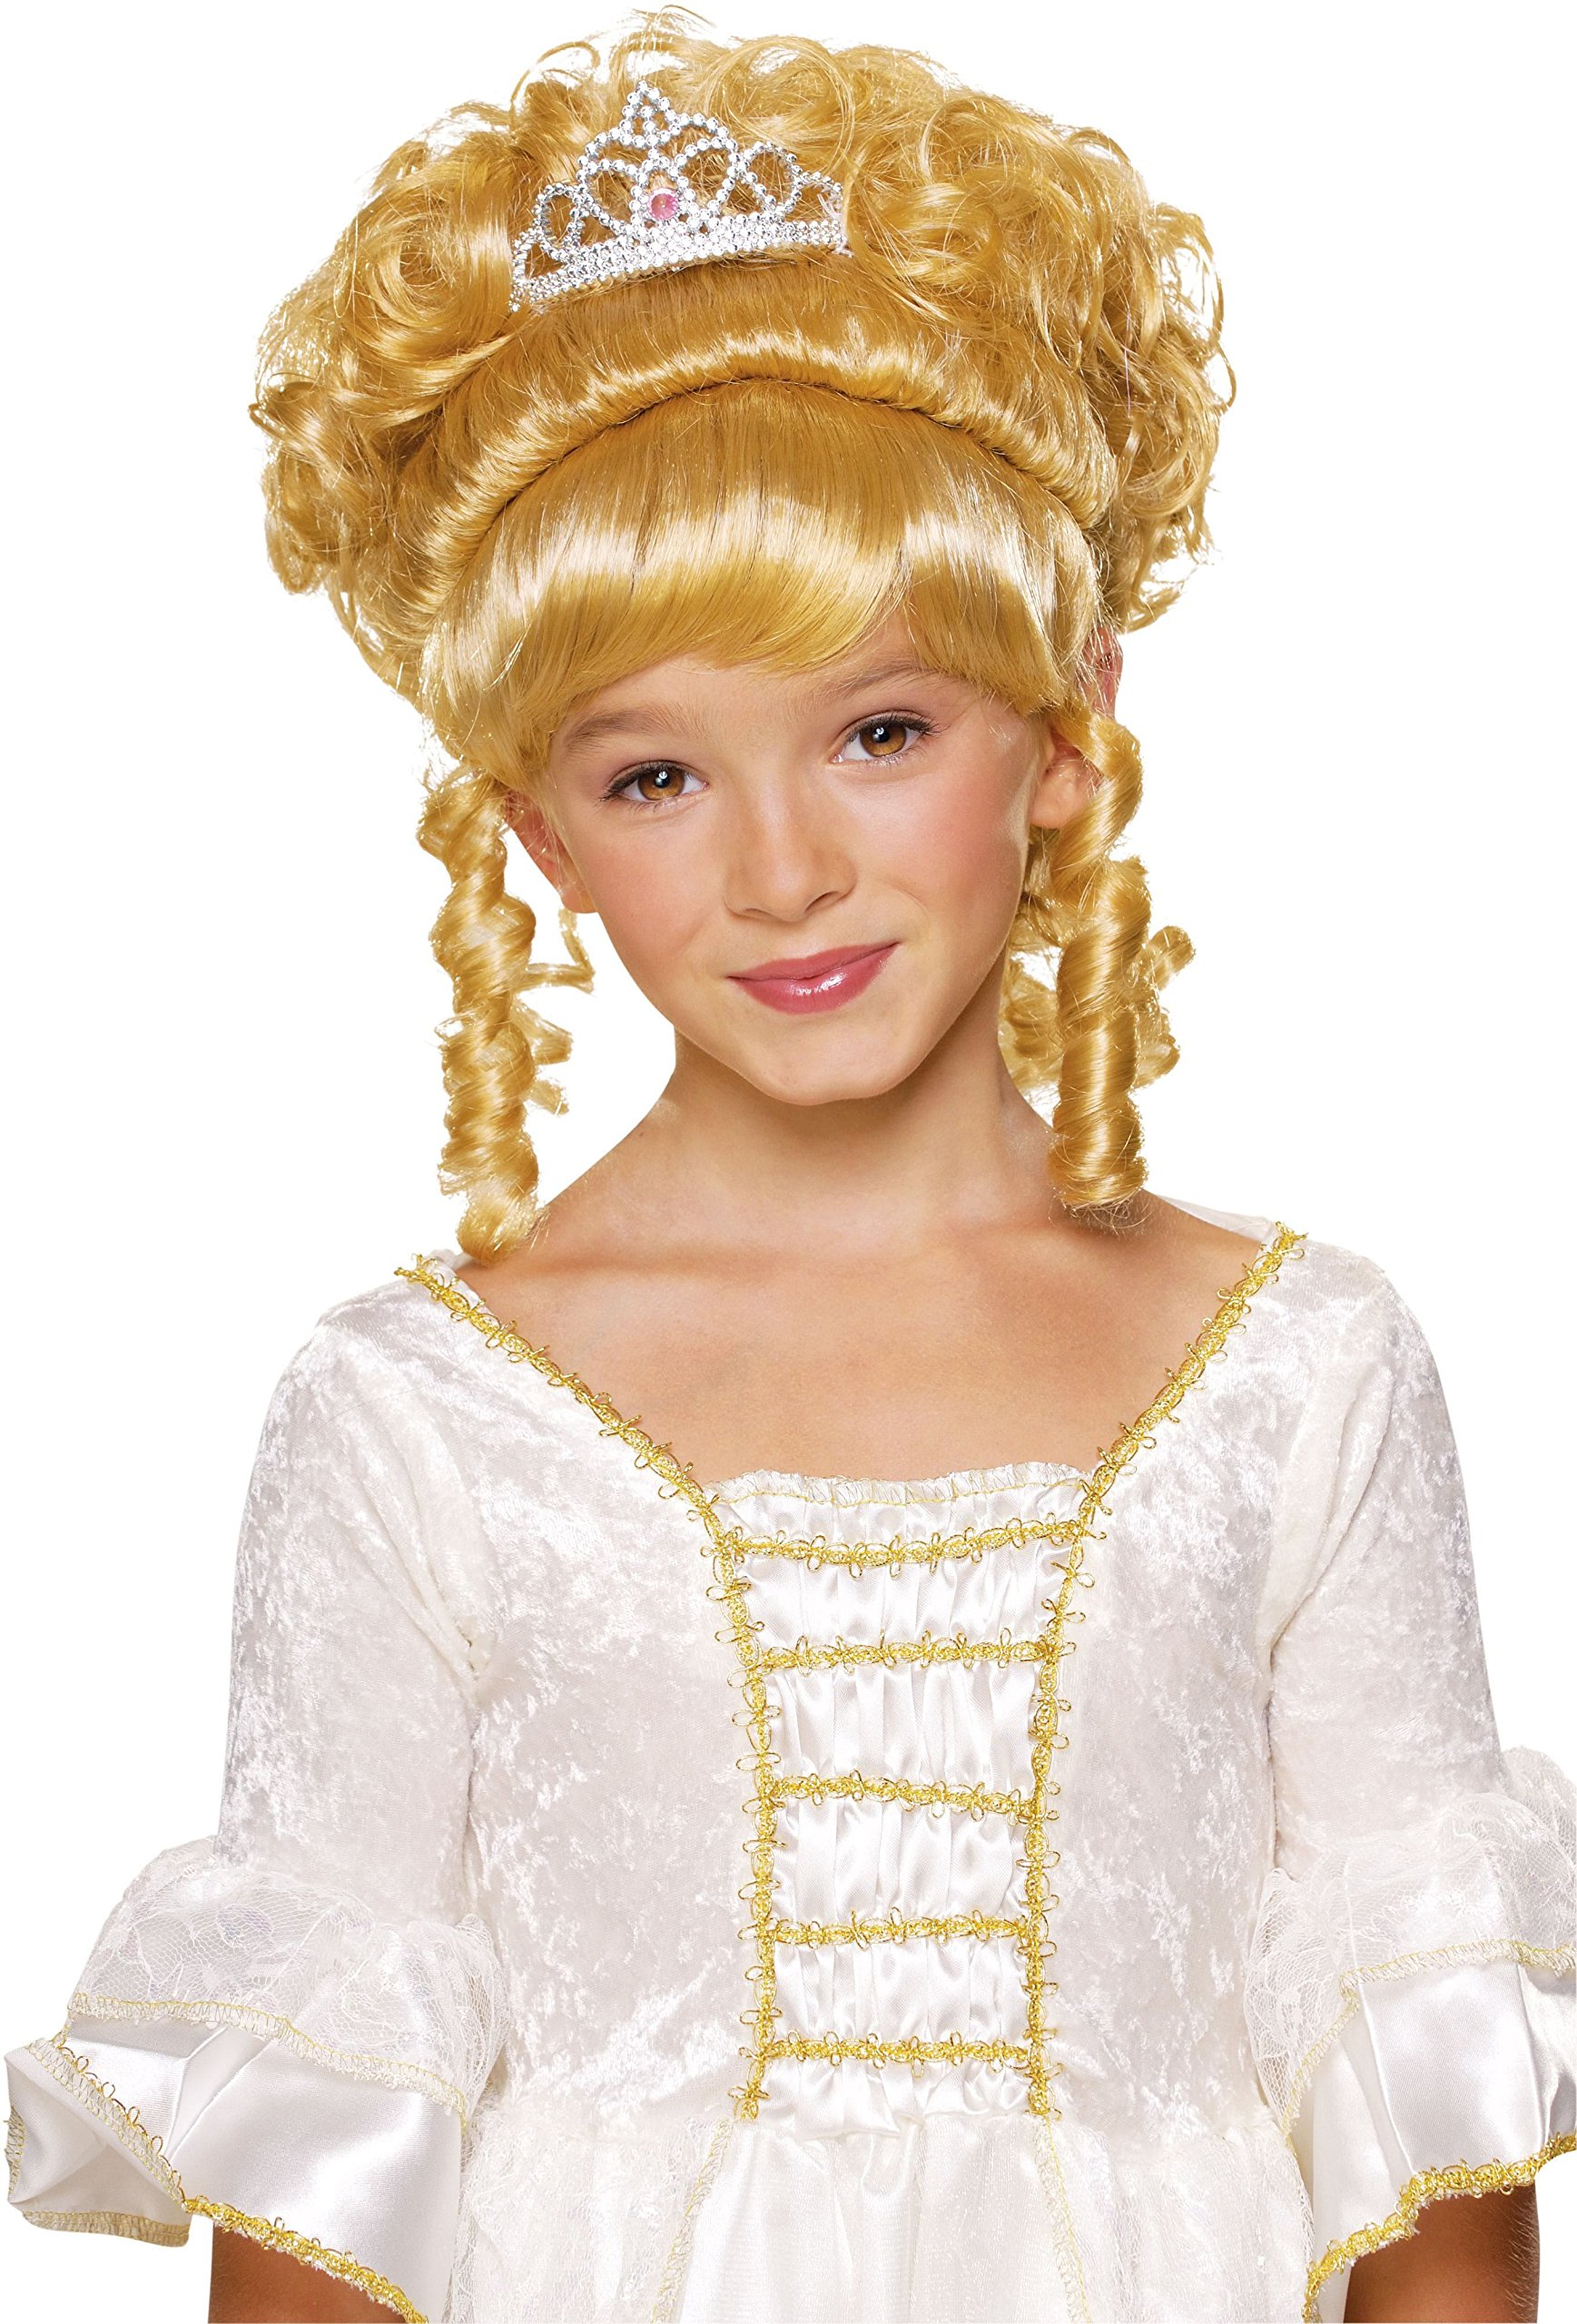 Rubie's Charming Princess Child's Costume Wig, Blonde